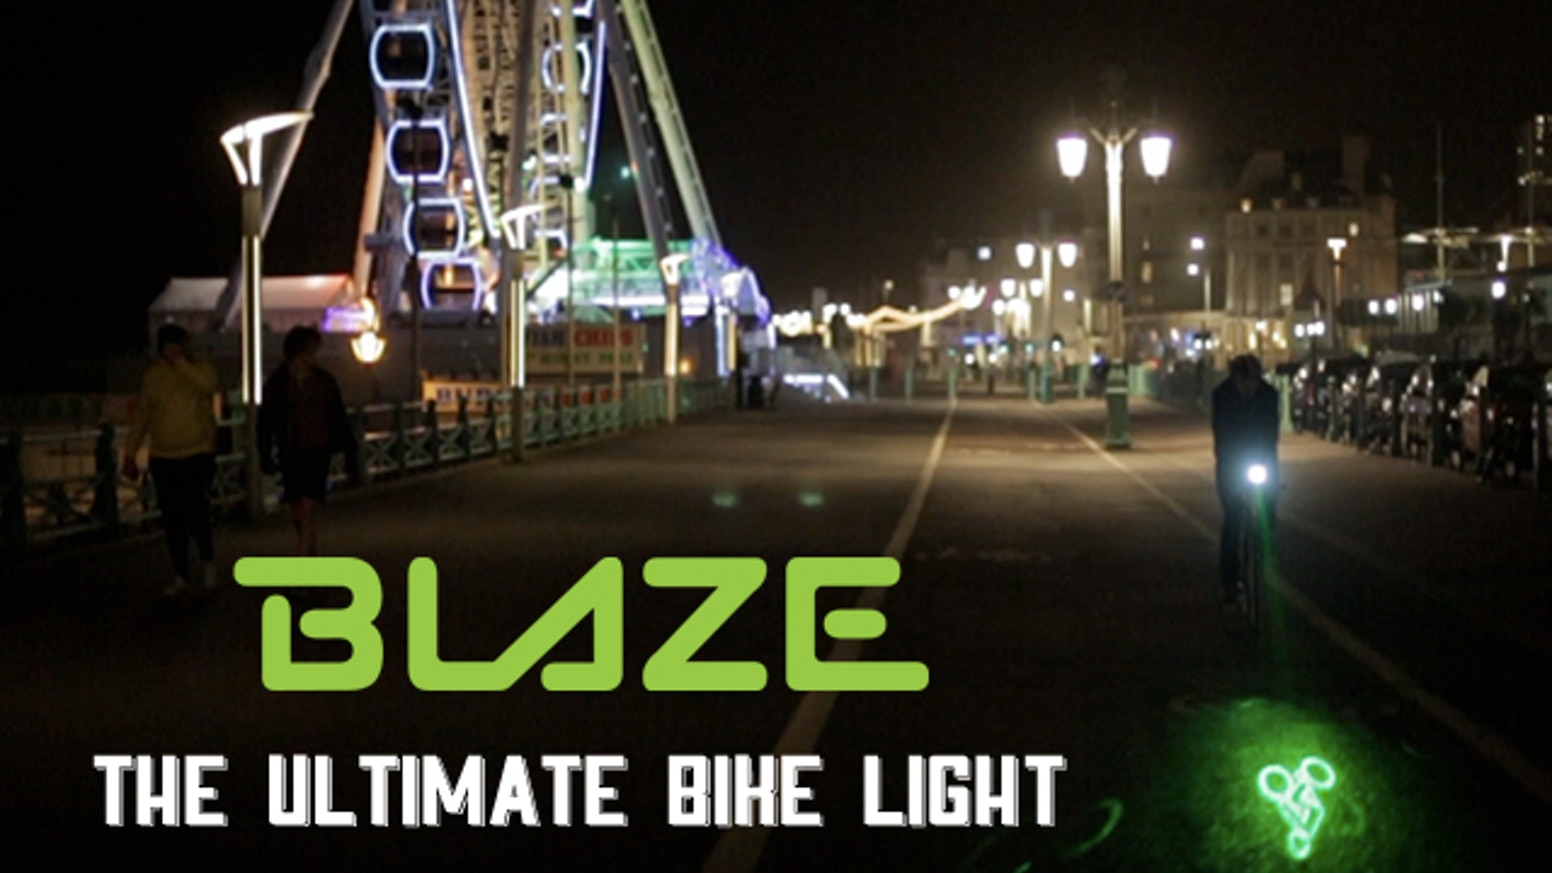 The Blaze Laserlight is a beautifully designed bike light with a laser projection designed to tackle the biggest cause of cycling fatalities - vehicles turning across an unseen bike. In 2018 Blaze became beryl. Find out more at www.beryl.cc